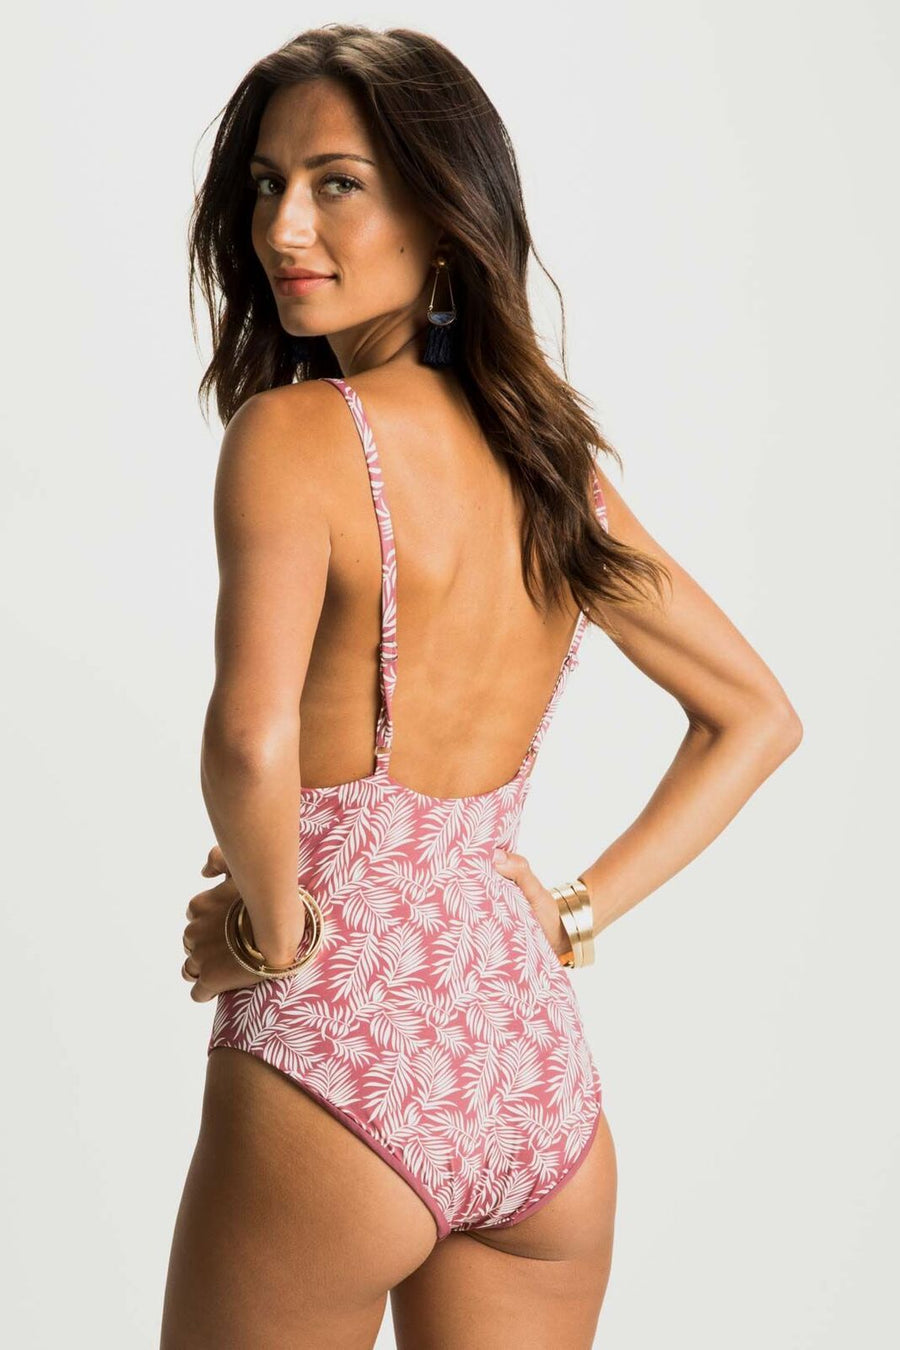 Peachy Keen Fern Print Two Tone One-Piece Swimsuit - Bohme